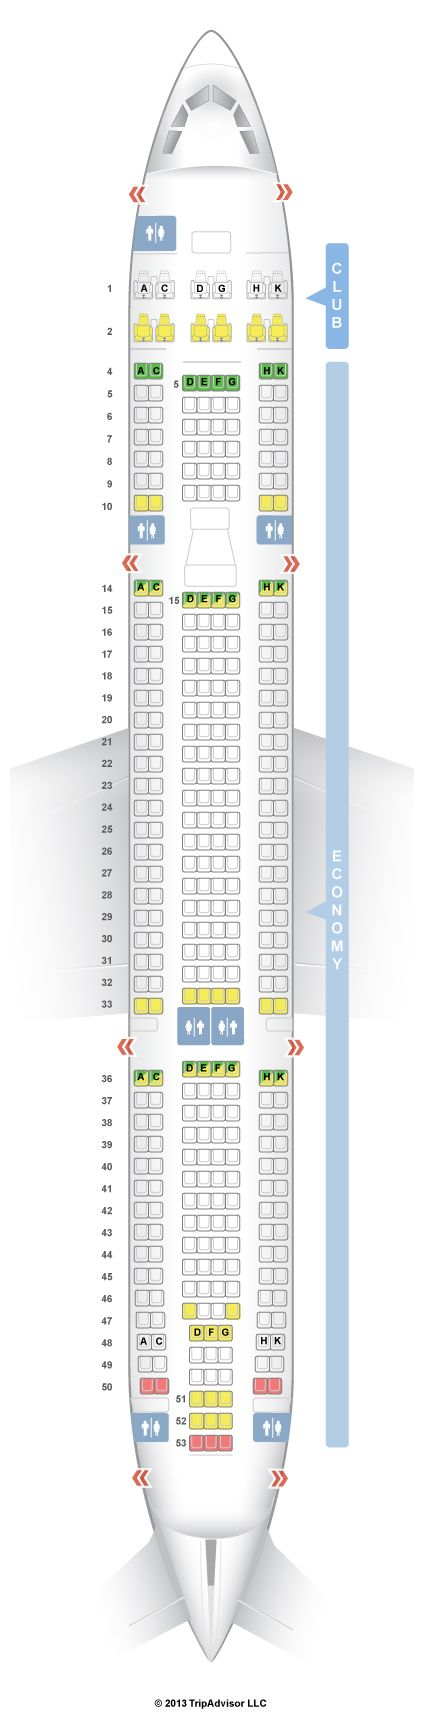 SeatGuru Seat Map Air Transat Airbus A330-300 (333) New Business